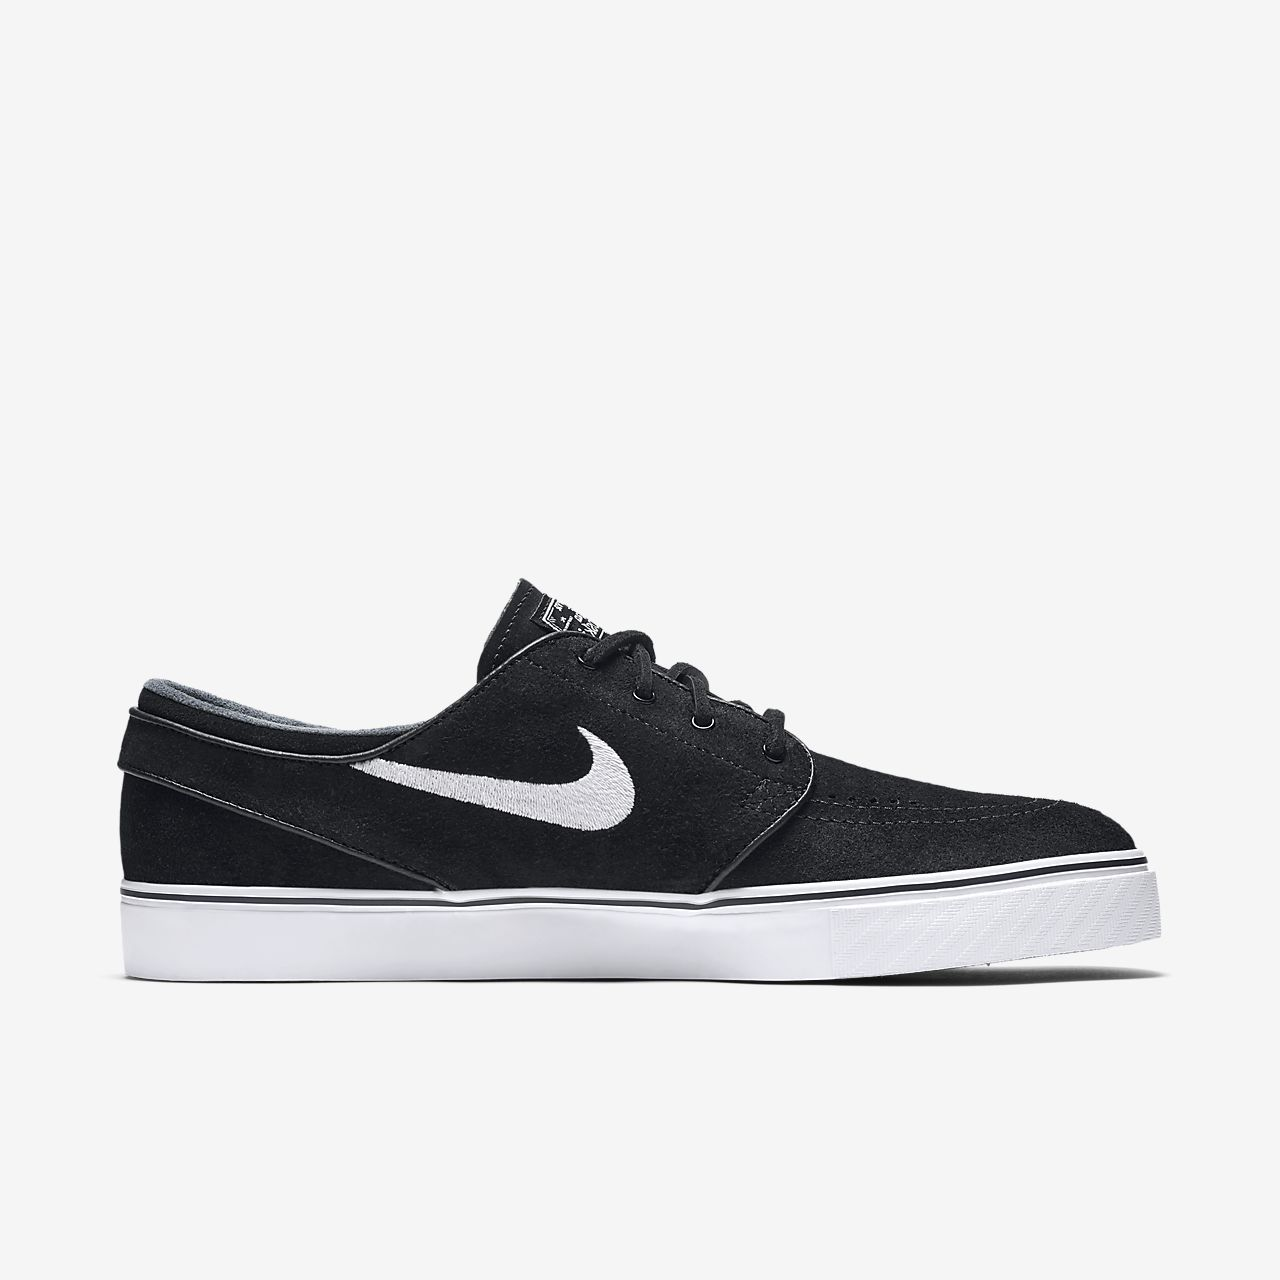 Nike SB Zoom Stefan Janoski OG Men's Skateboarding Shoes Black/Brown/White wV1762G